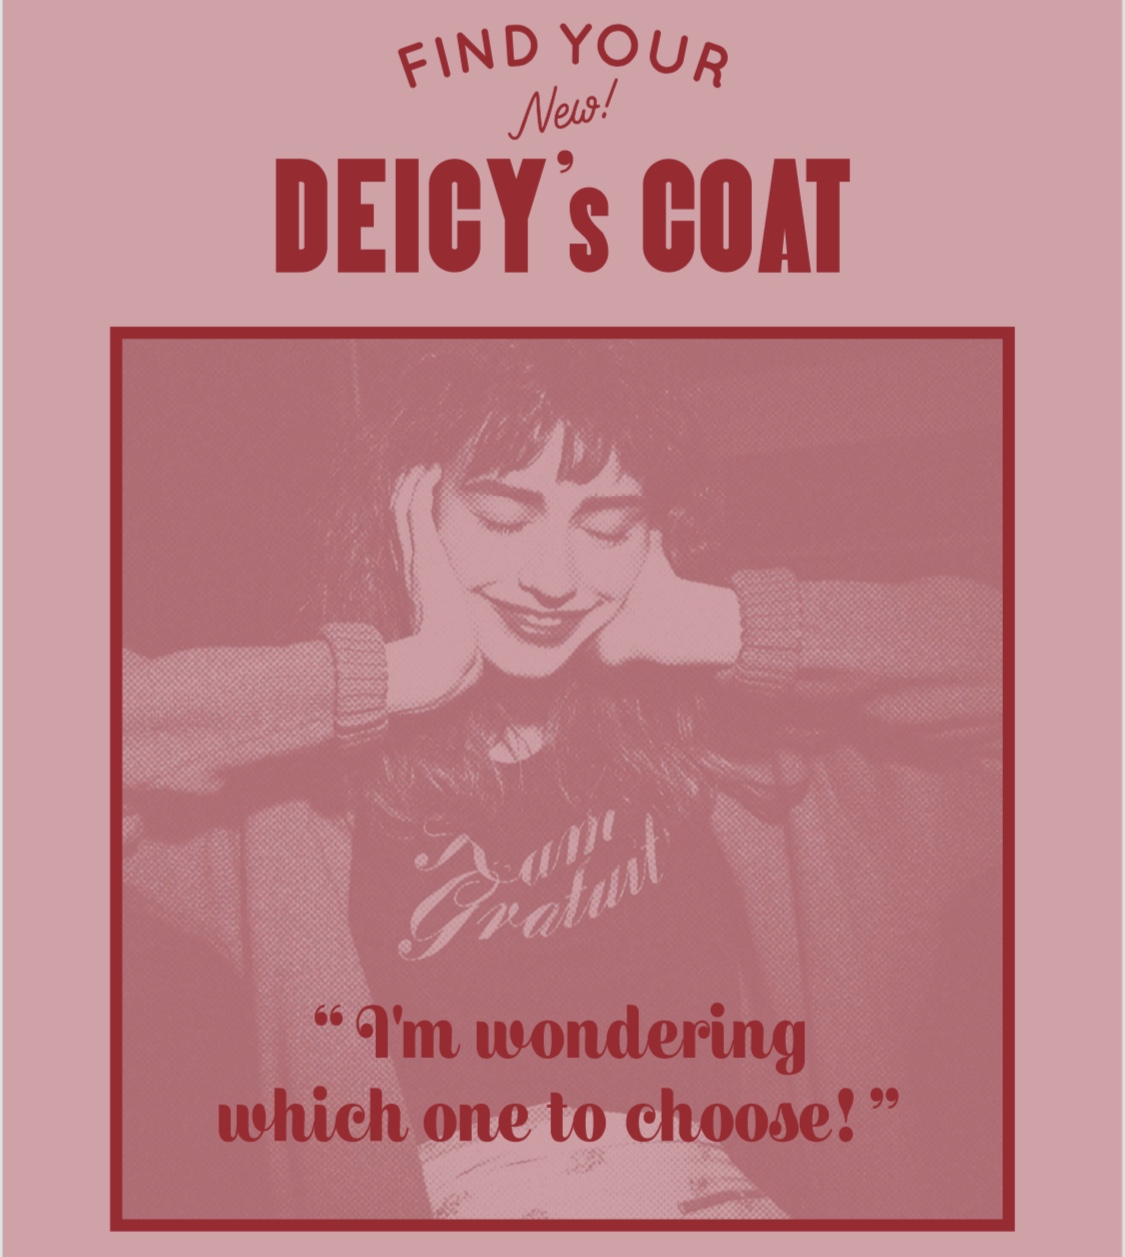 FIND YOUR New DEICY's COAT